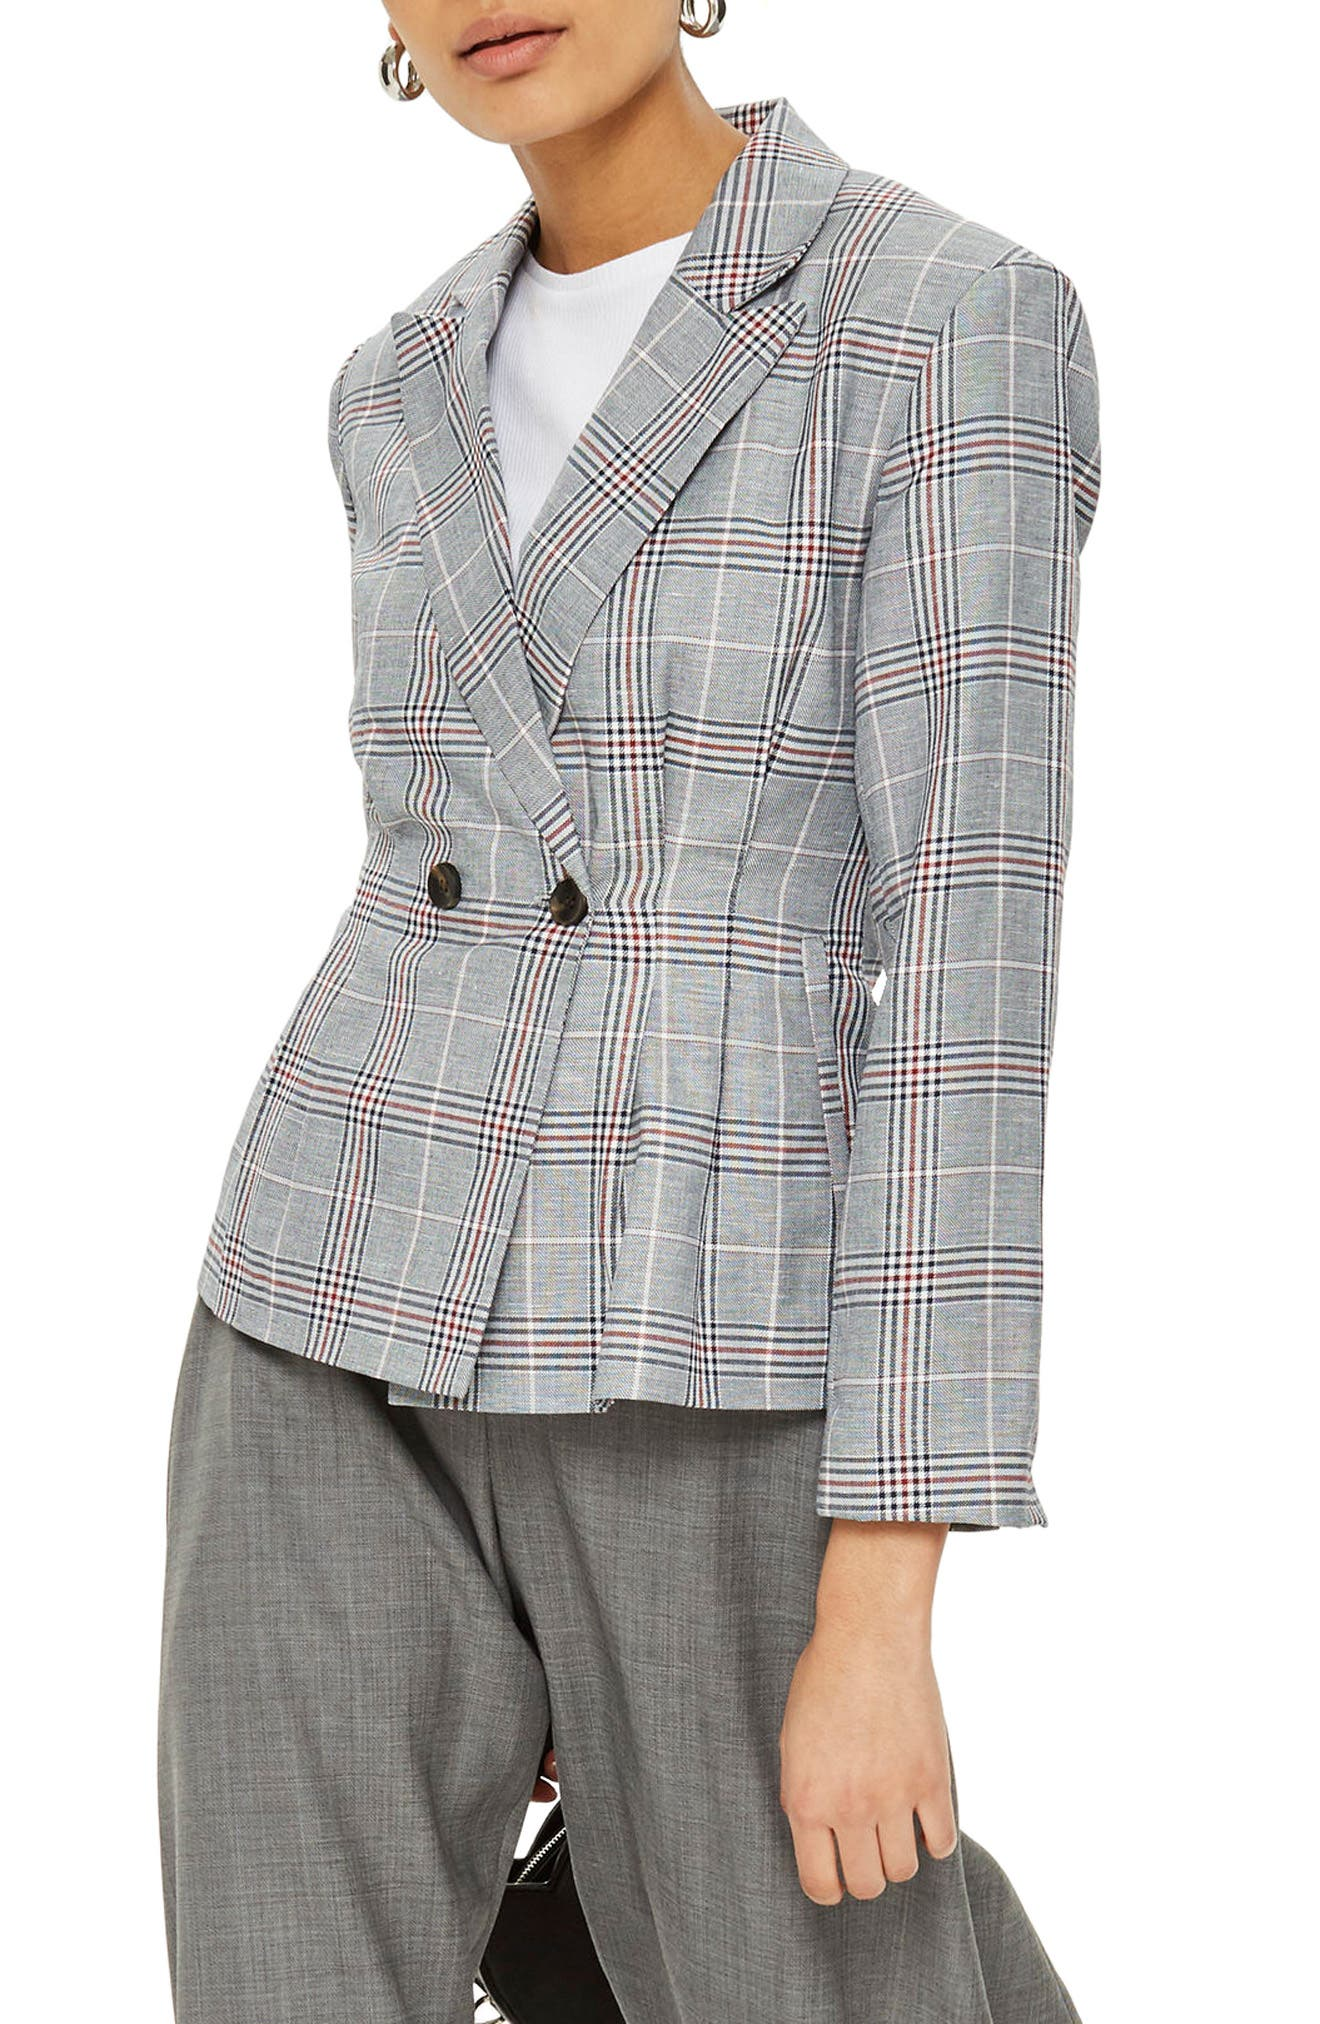 Cham Linen Checkered Jacket,                         Main,                         color, 021